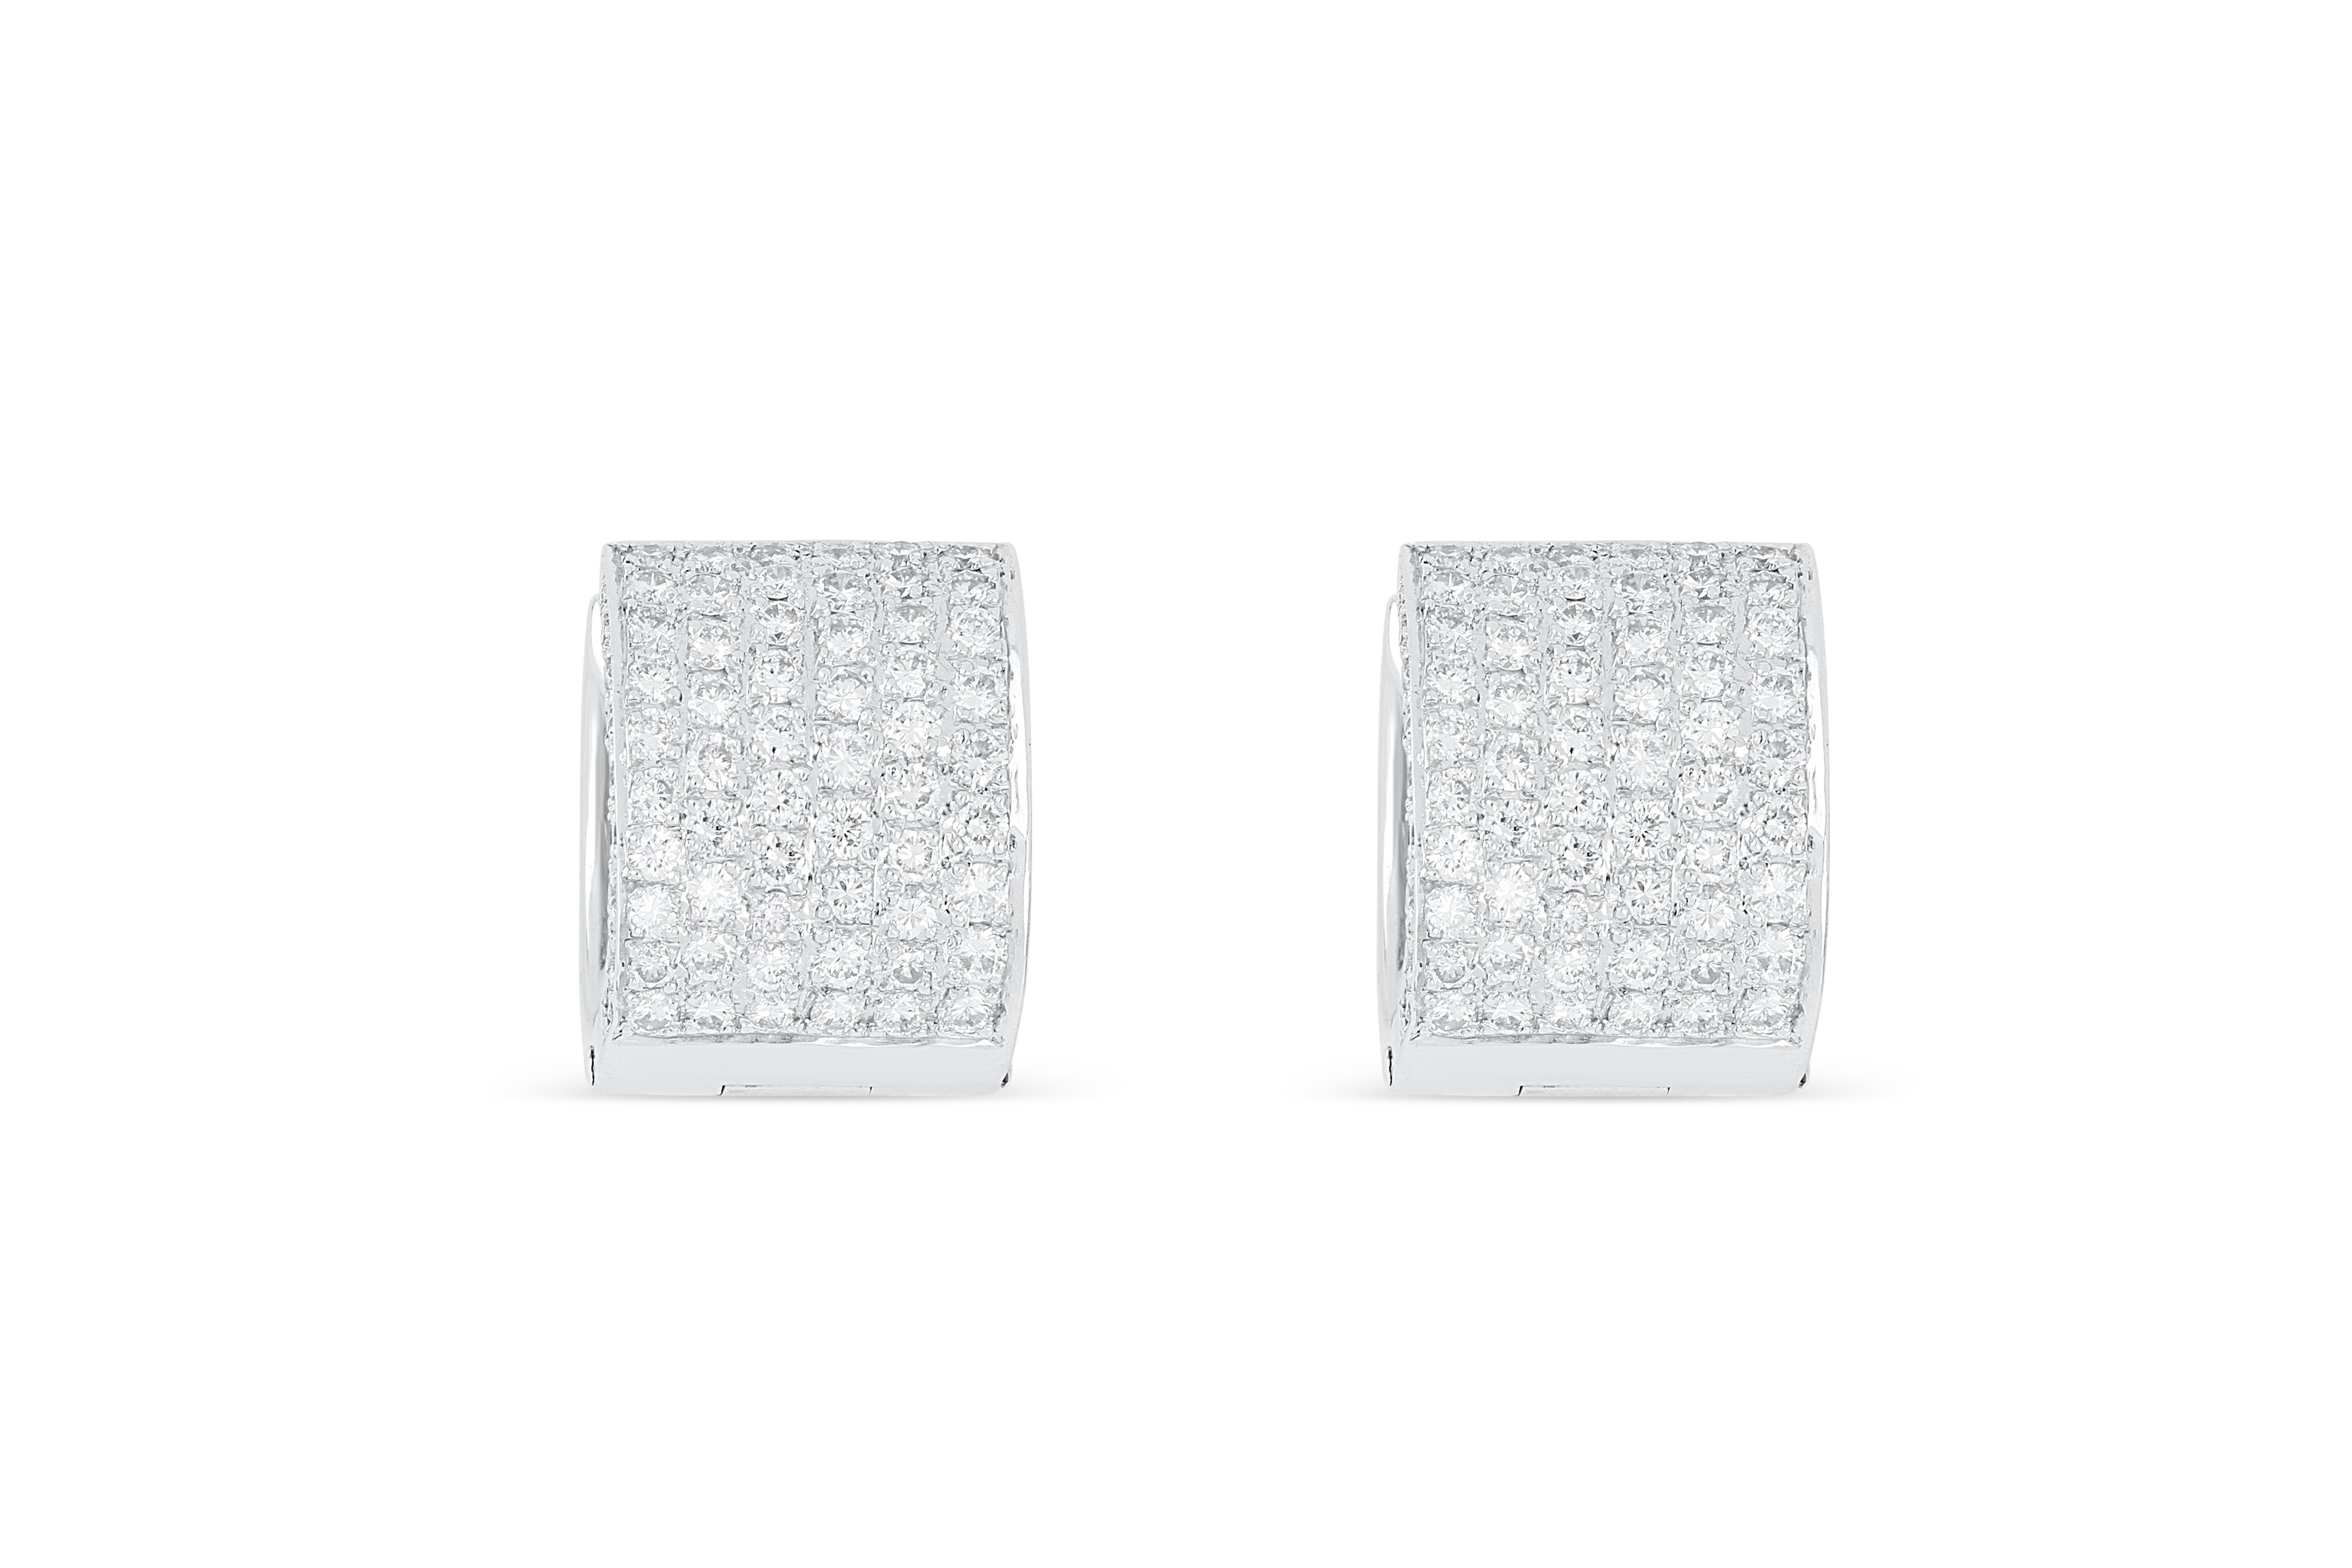 18k white gold earrings pave set with 2.14cts of diamonds